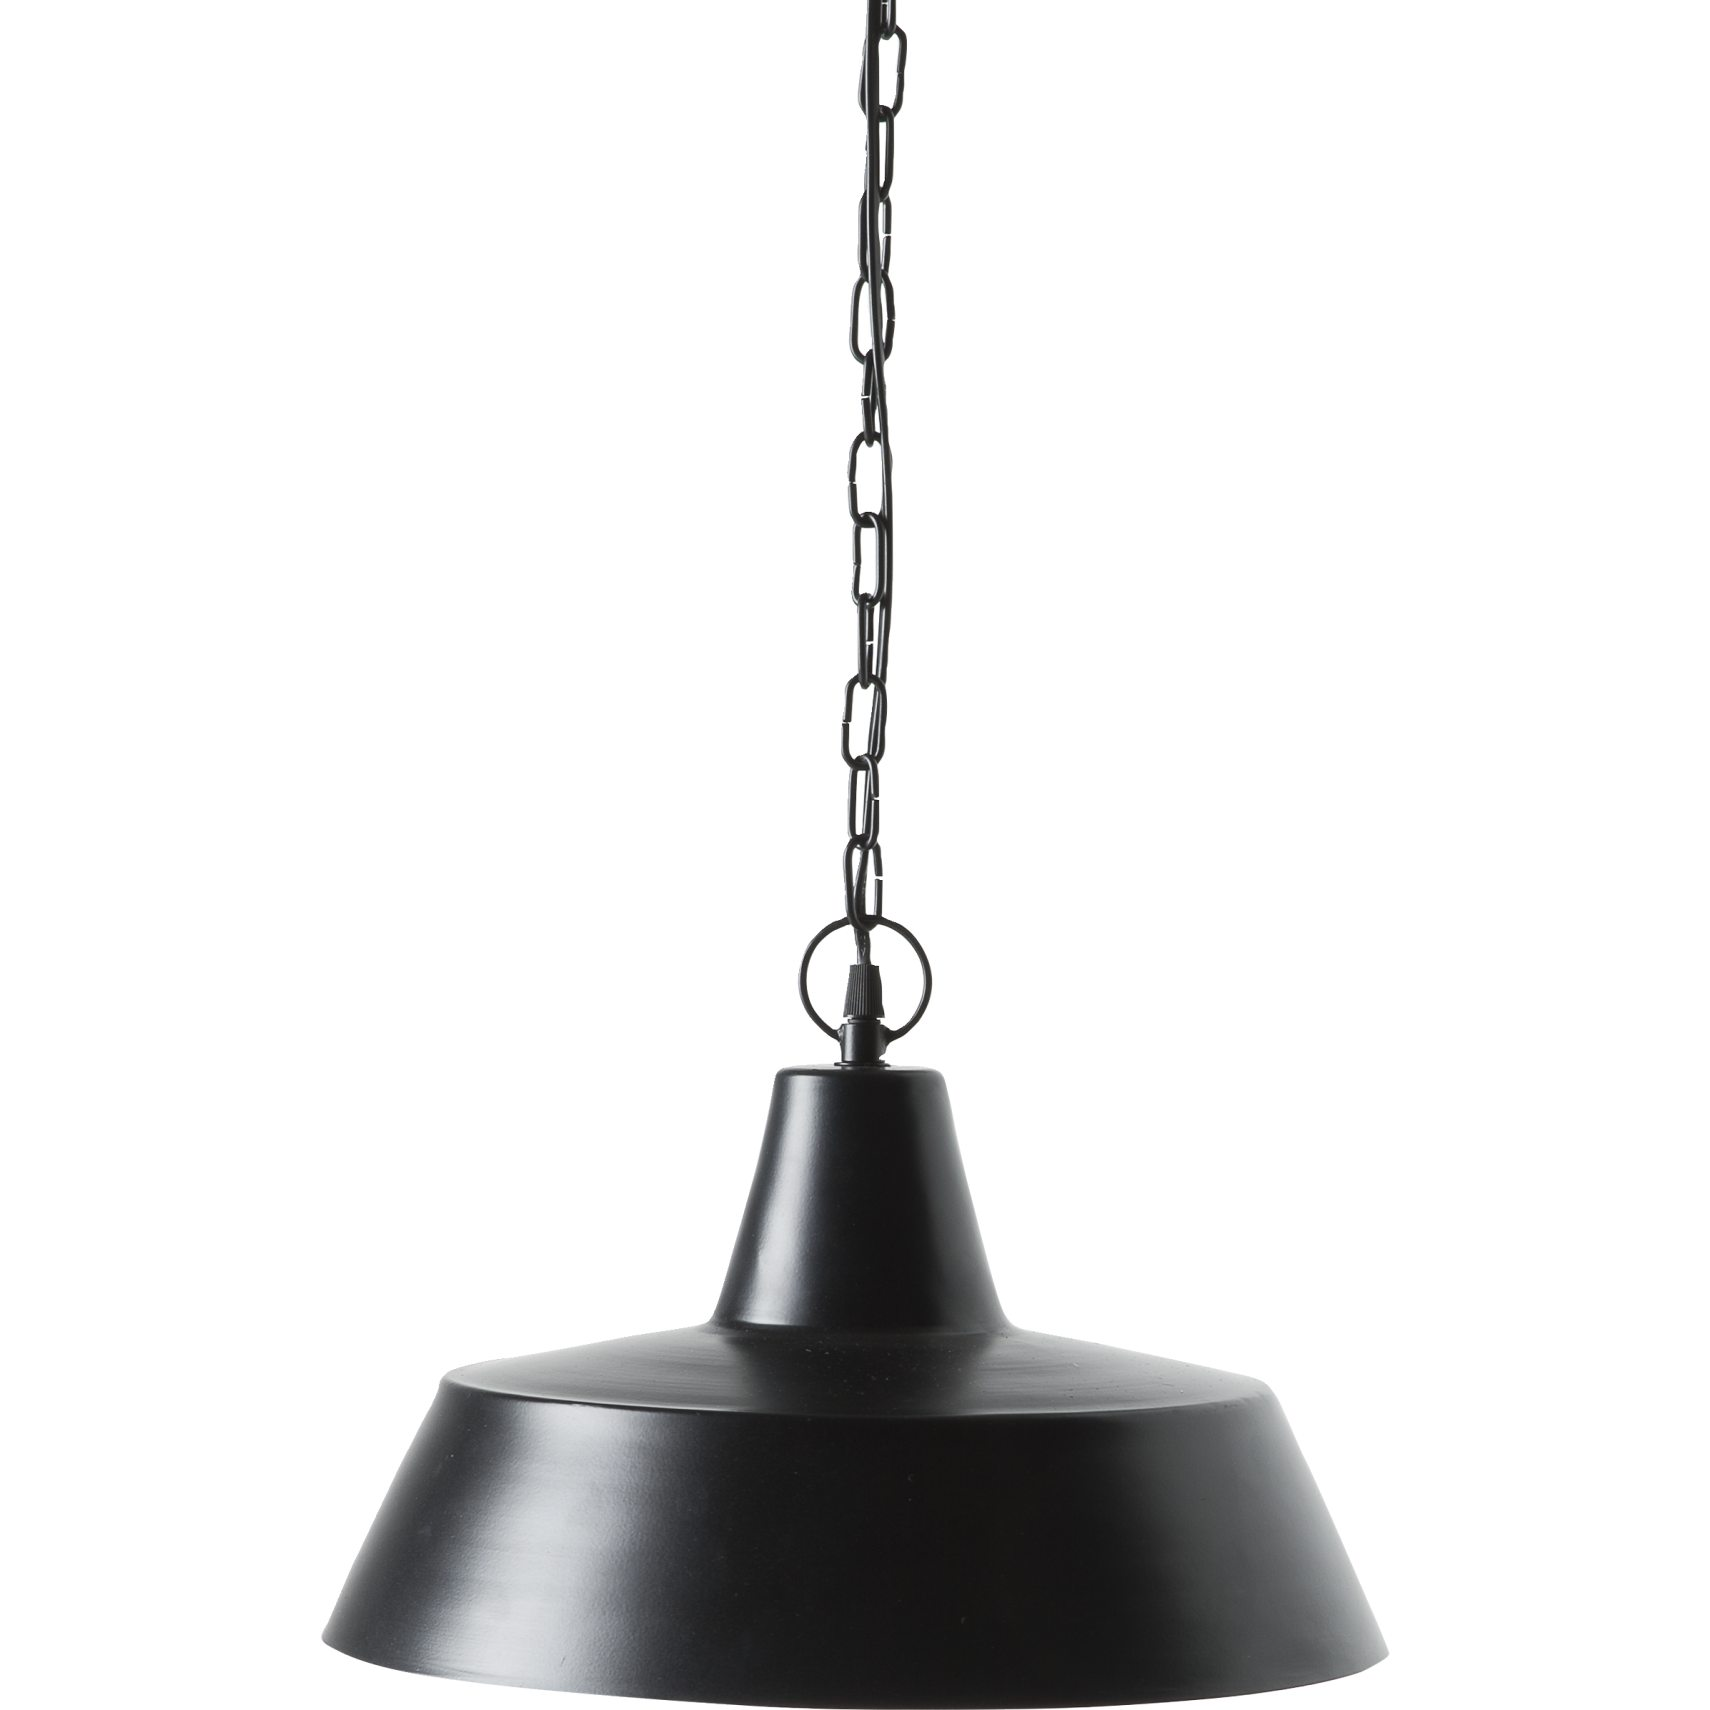 Metal lamp Pendel 38 cm - Mat sort metal